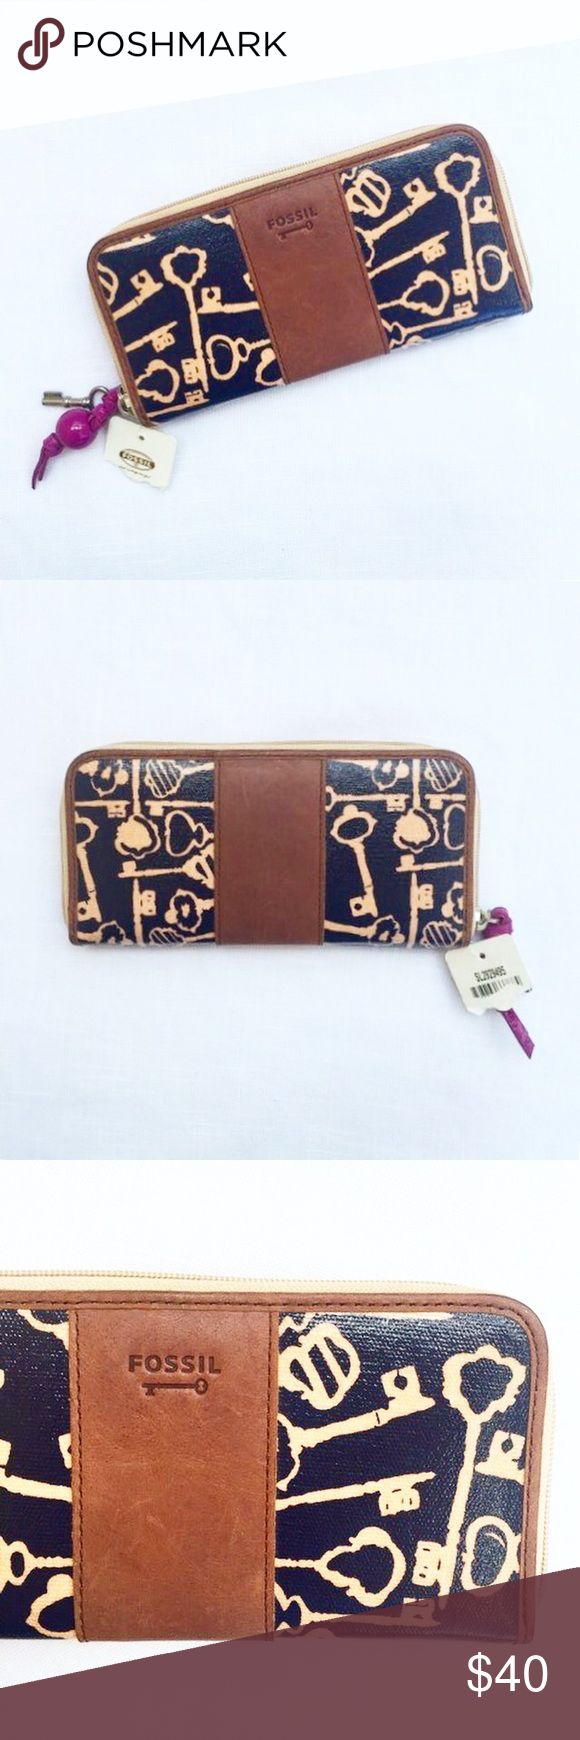 """🗝FOSSIL 